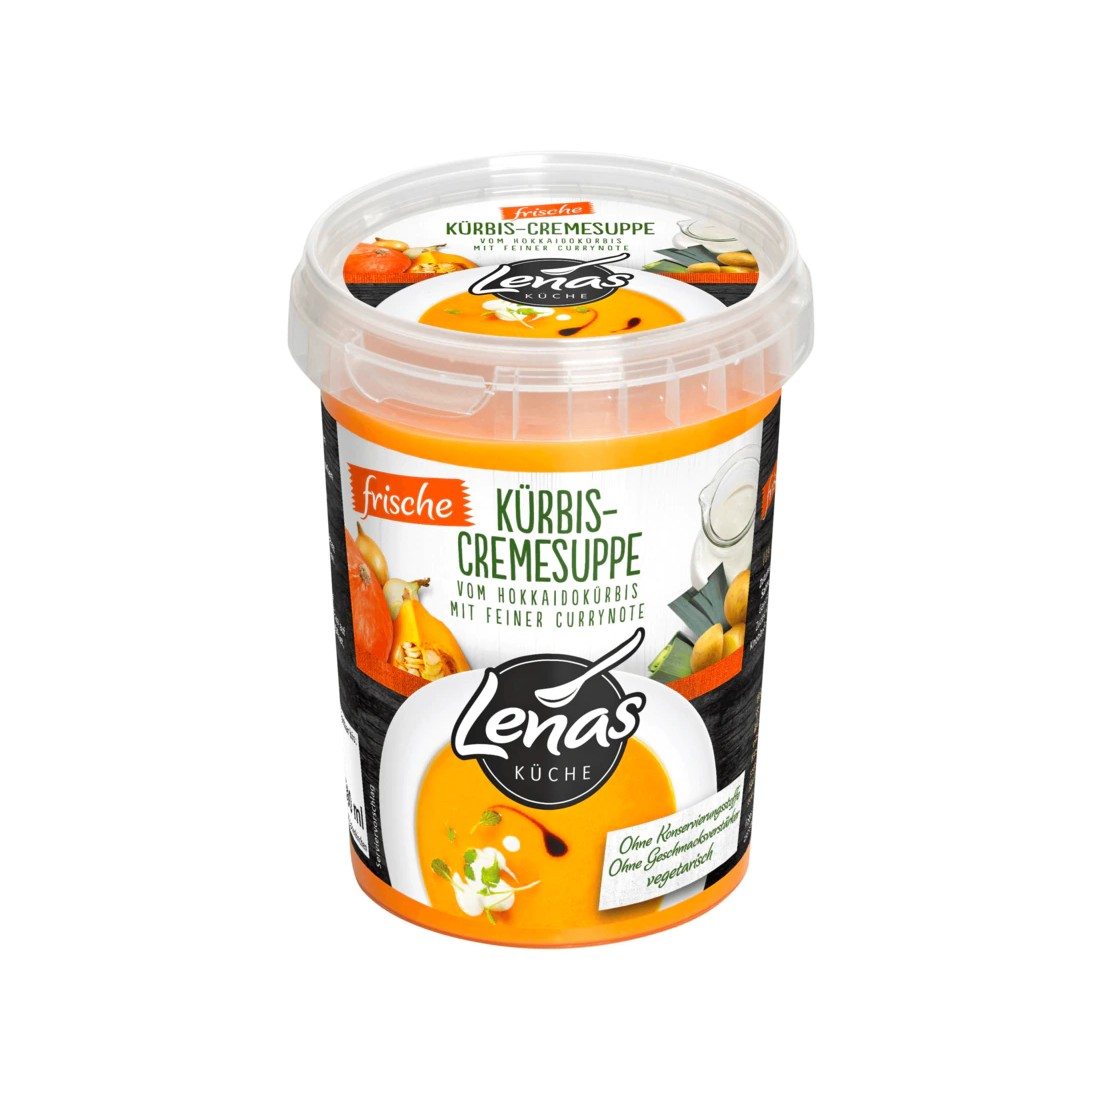 Buy Lenas Küche Kürbiscremesuppe in Berlin with delivery